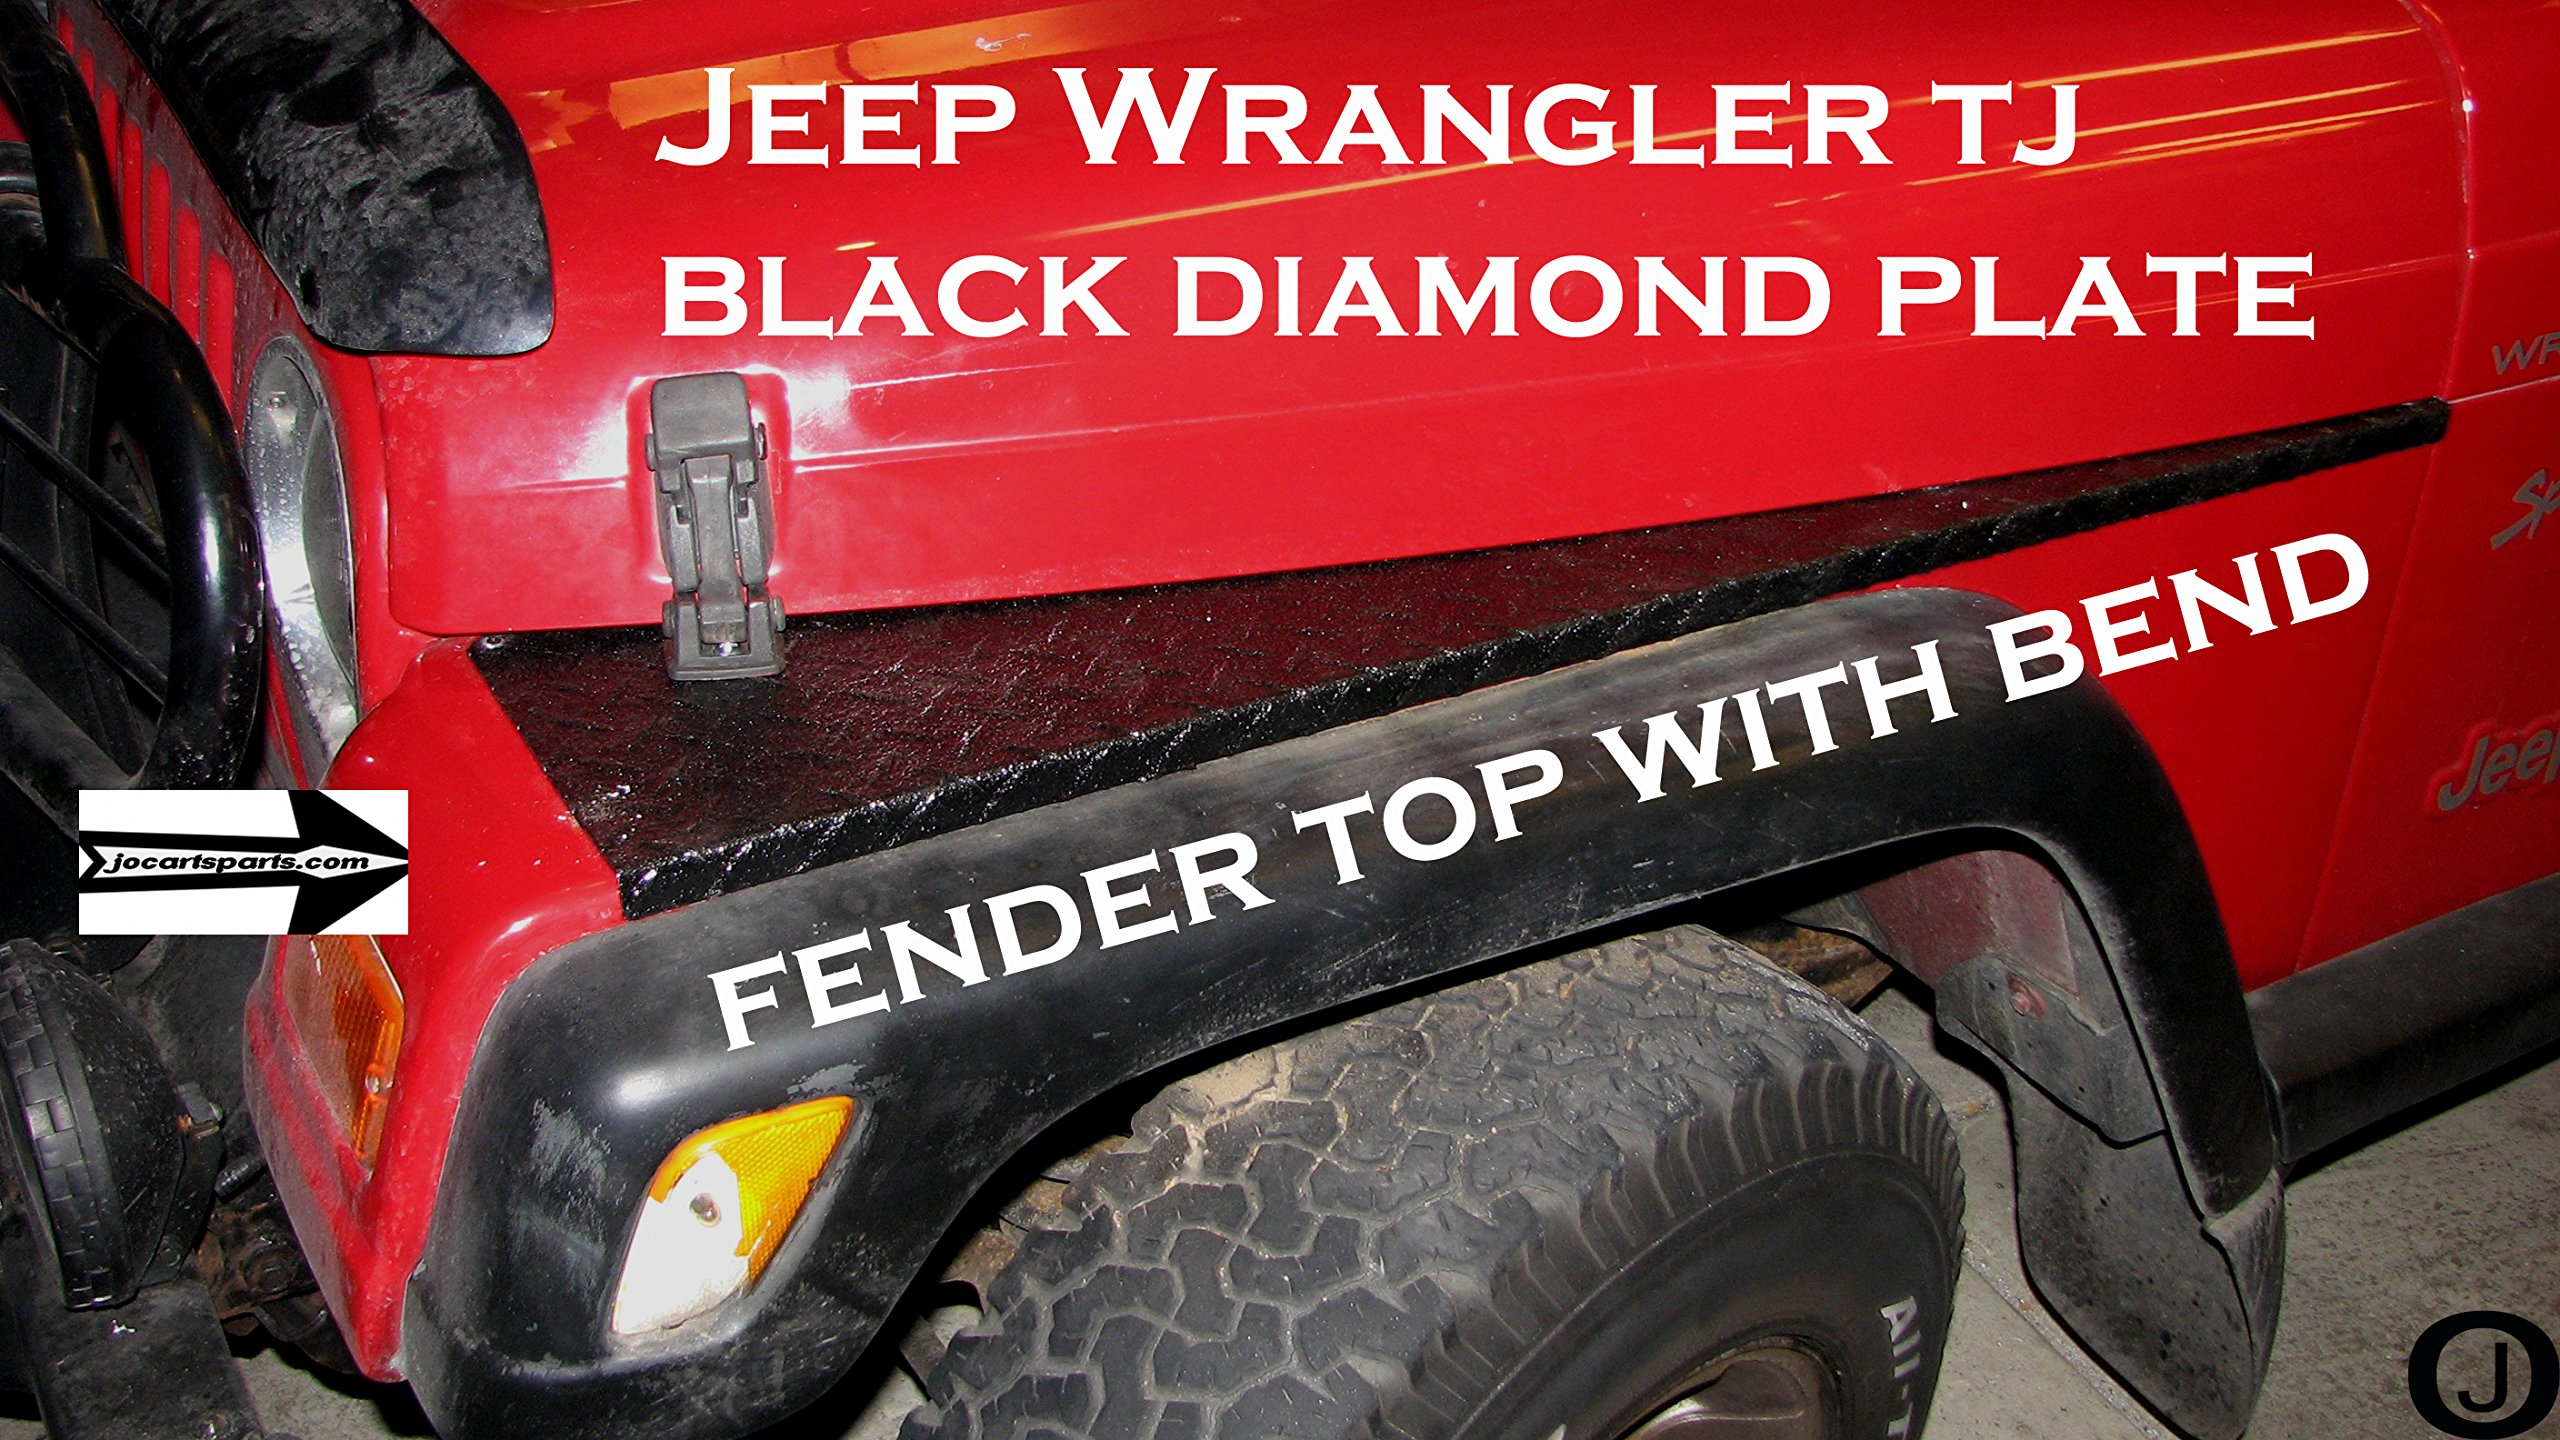 Fits Jeep Tj Black Coated Diamond Plate Full Top Fender Cover With Bend Buy Online In Bahamas At Bahamas Desertcart Com Productid 14798239